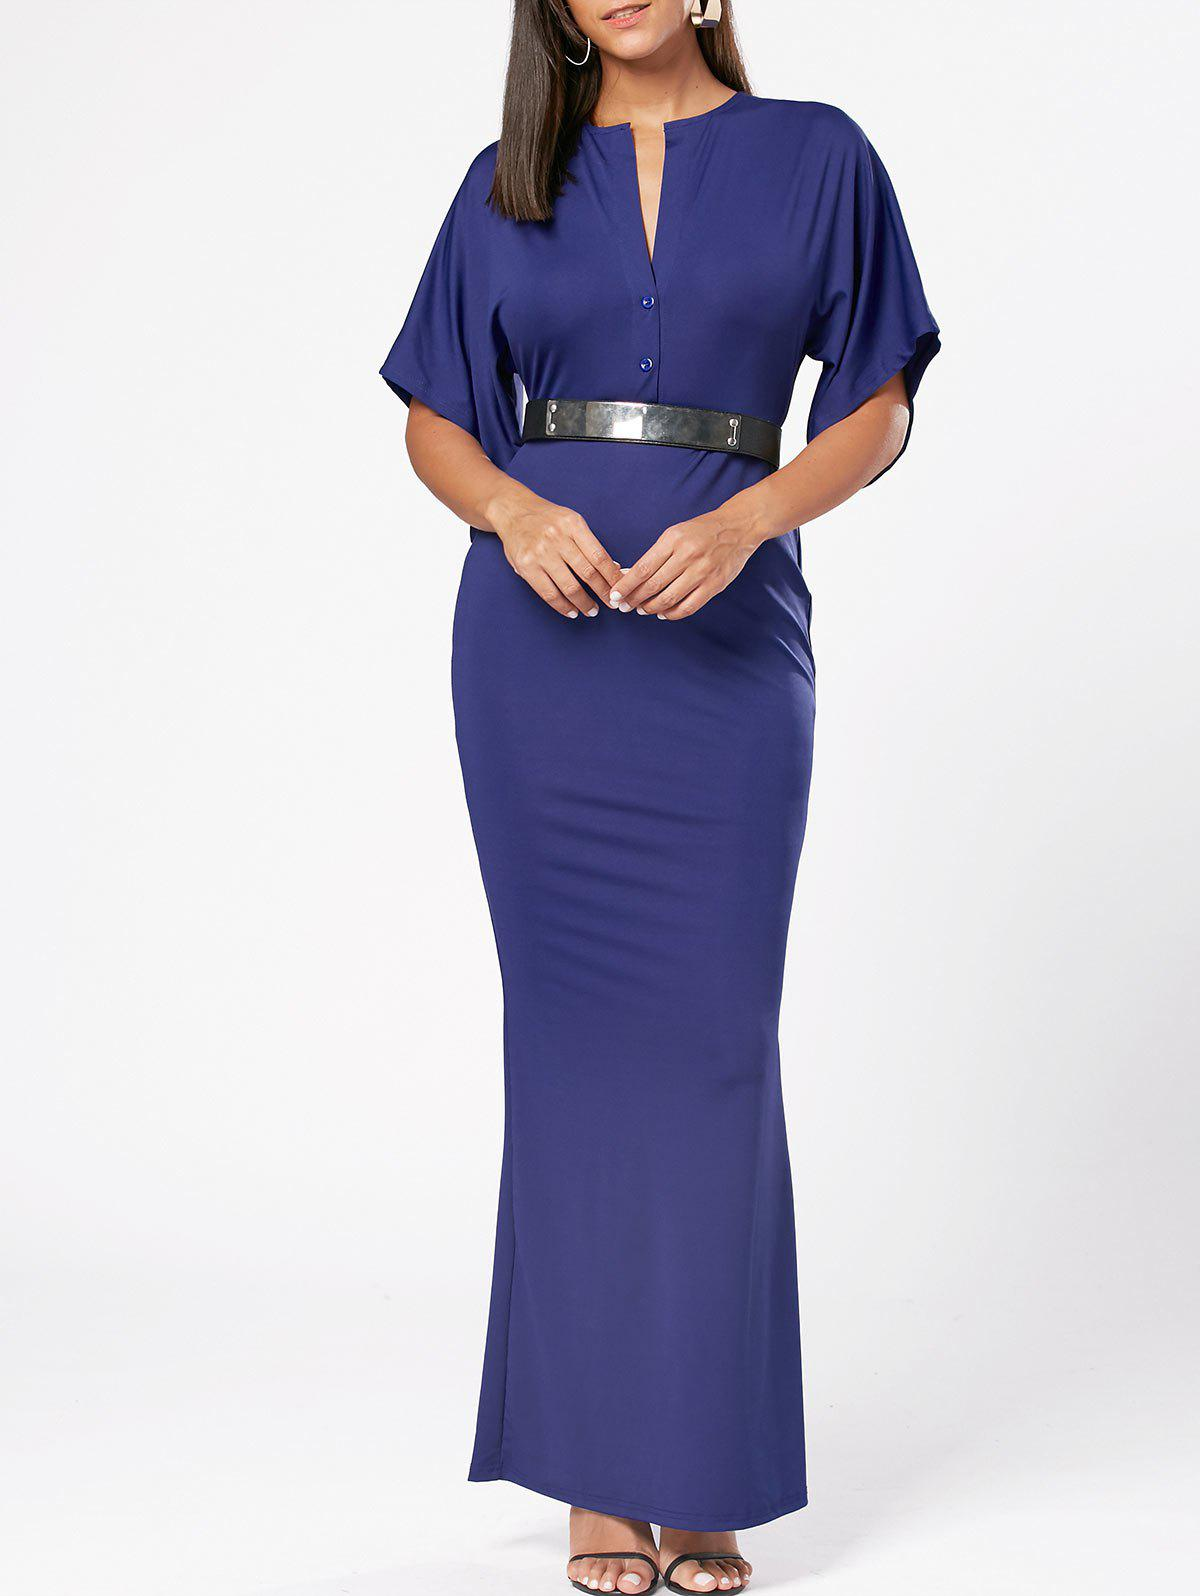 Raglan Sleeve V Neck Bodycon Maxi Dress - Bleu S